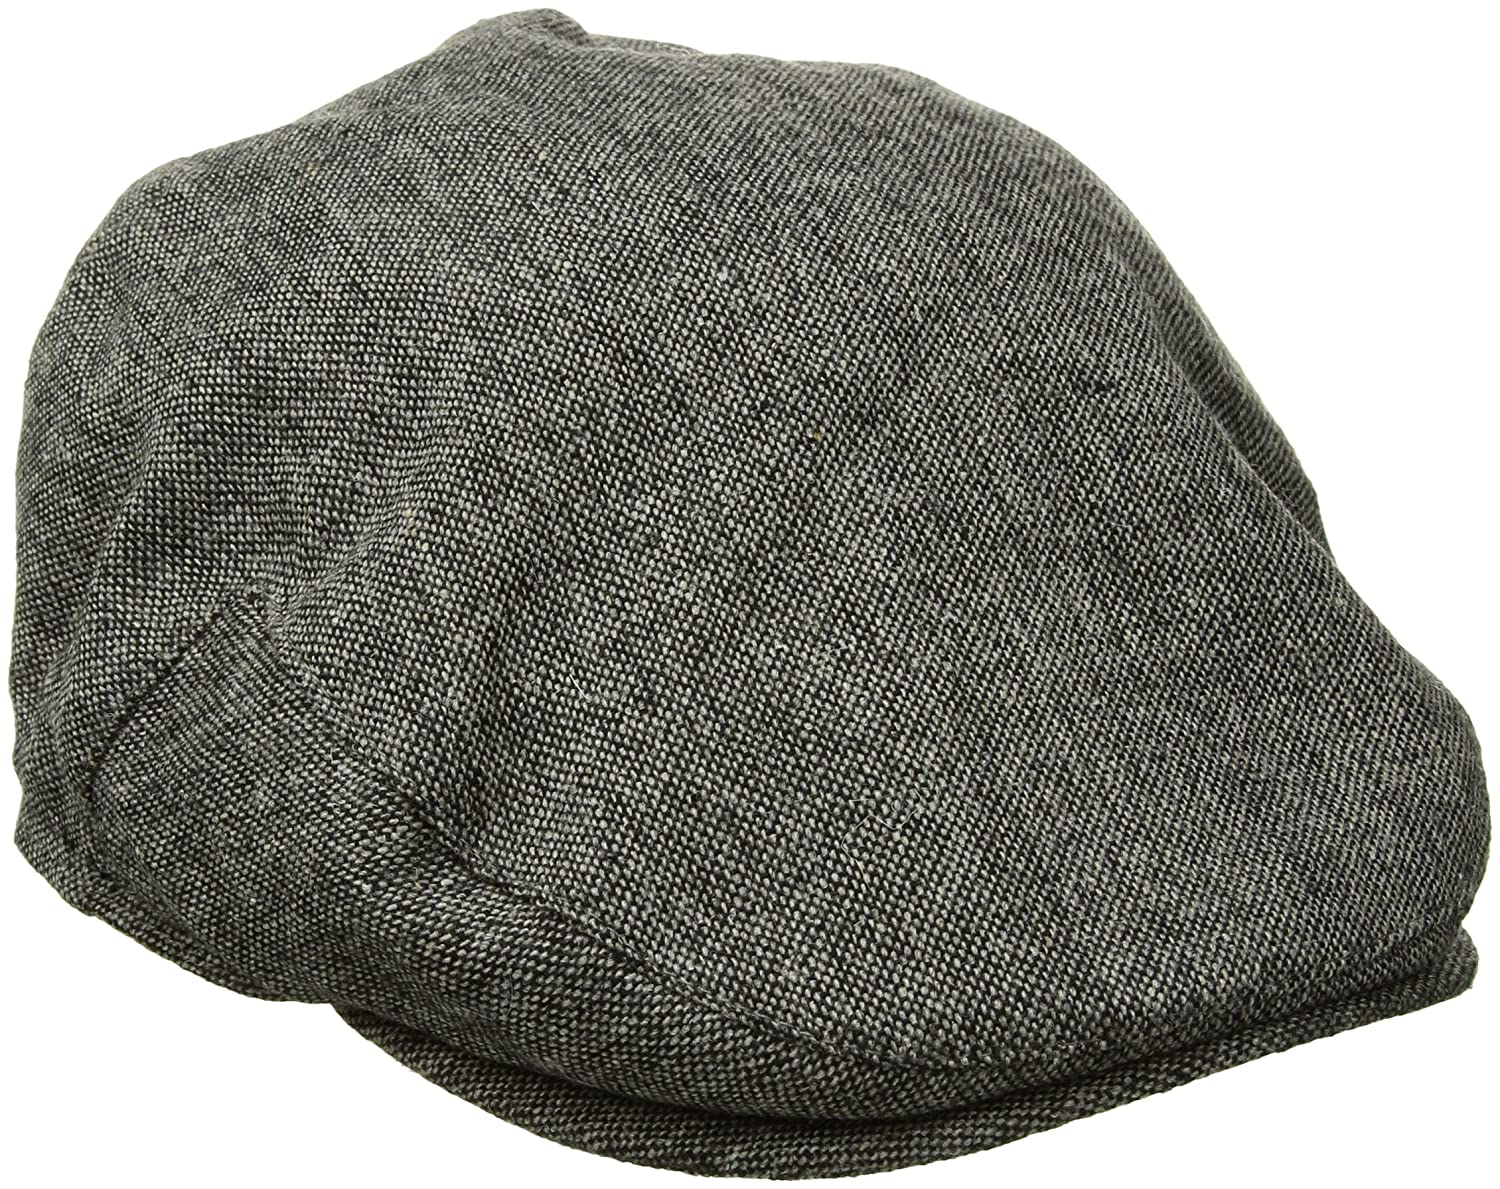 Country Gentleman Mens Ainsley Flat Ivy Cap with Ear Laps Country Gentleman Men' s Headwear CG172